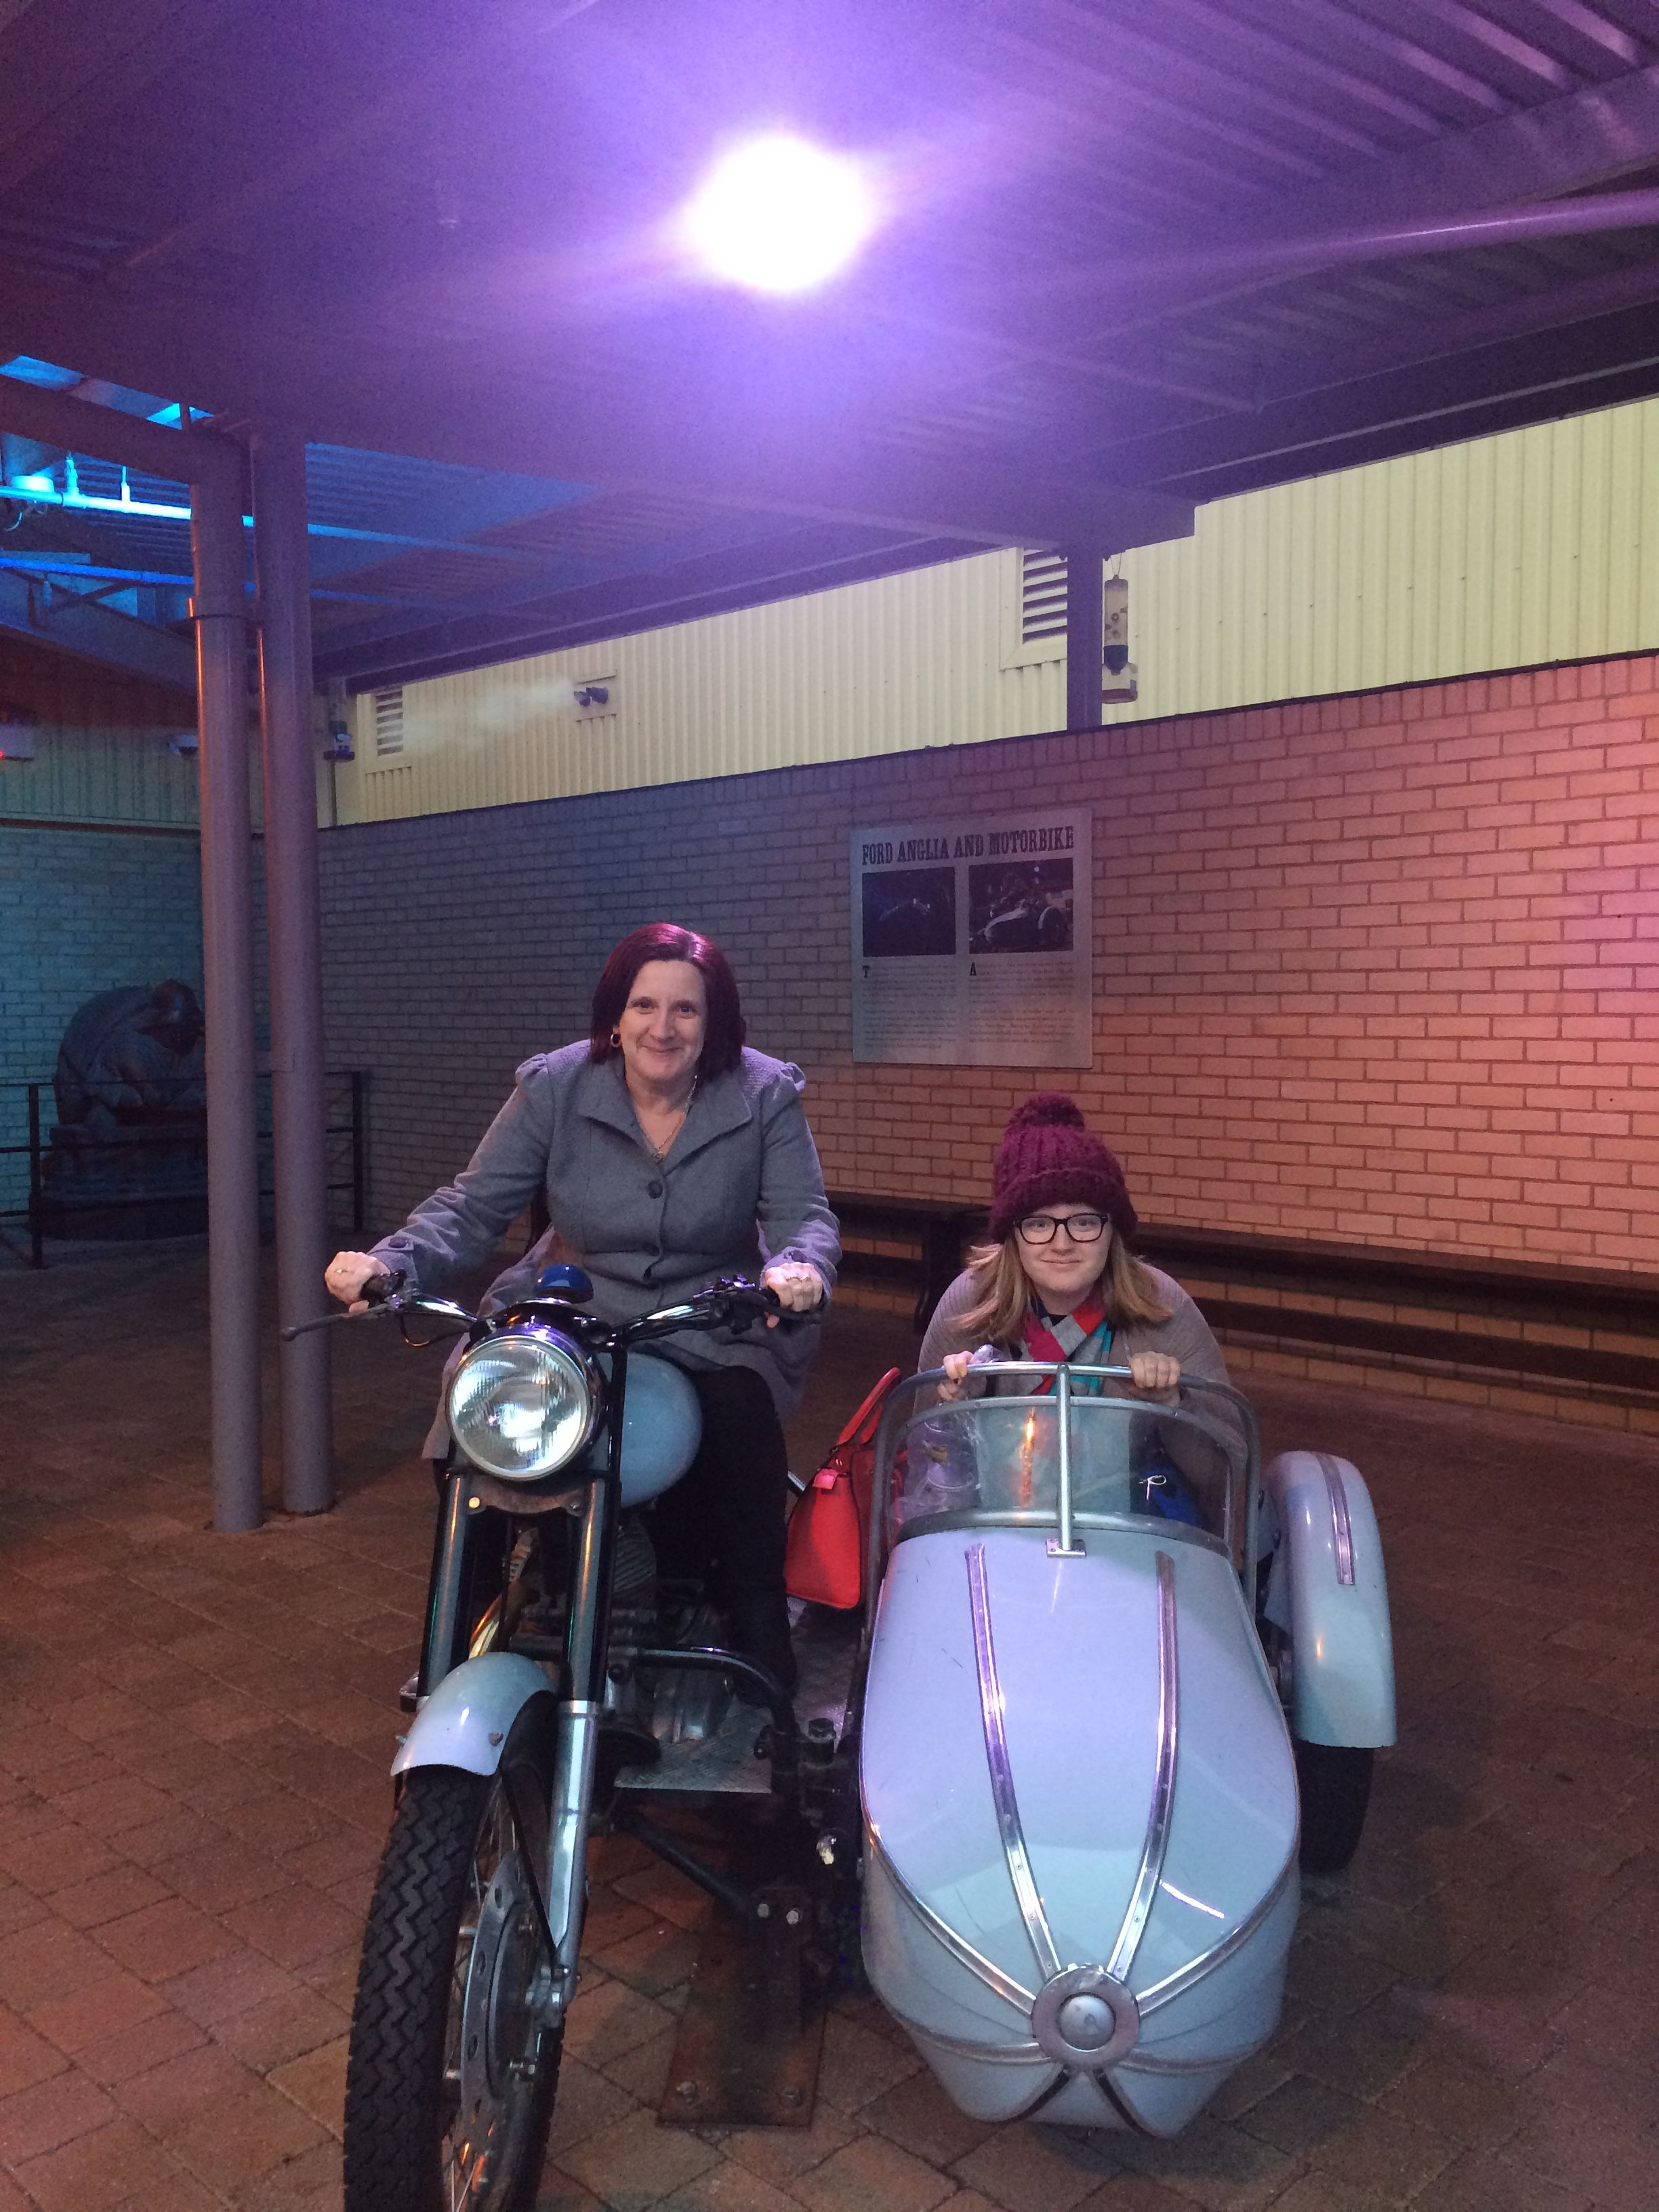 Need for speed Moped, Harry potter world, Christmas travel